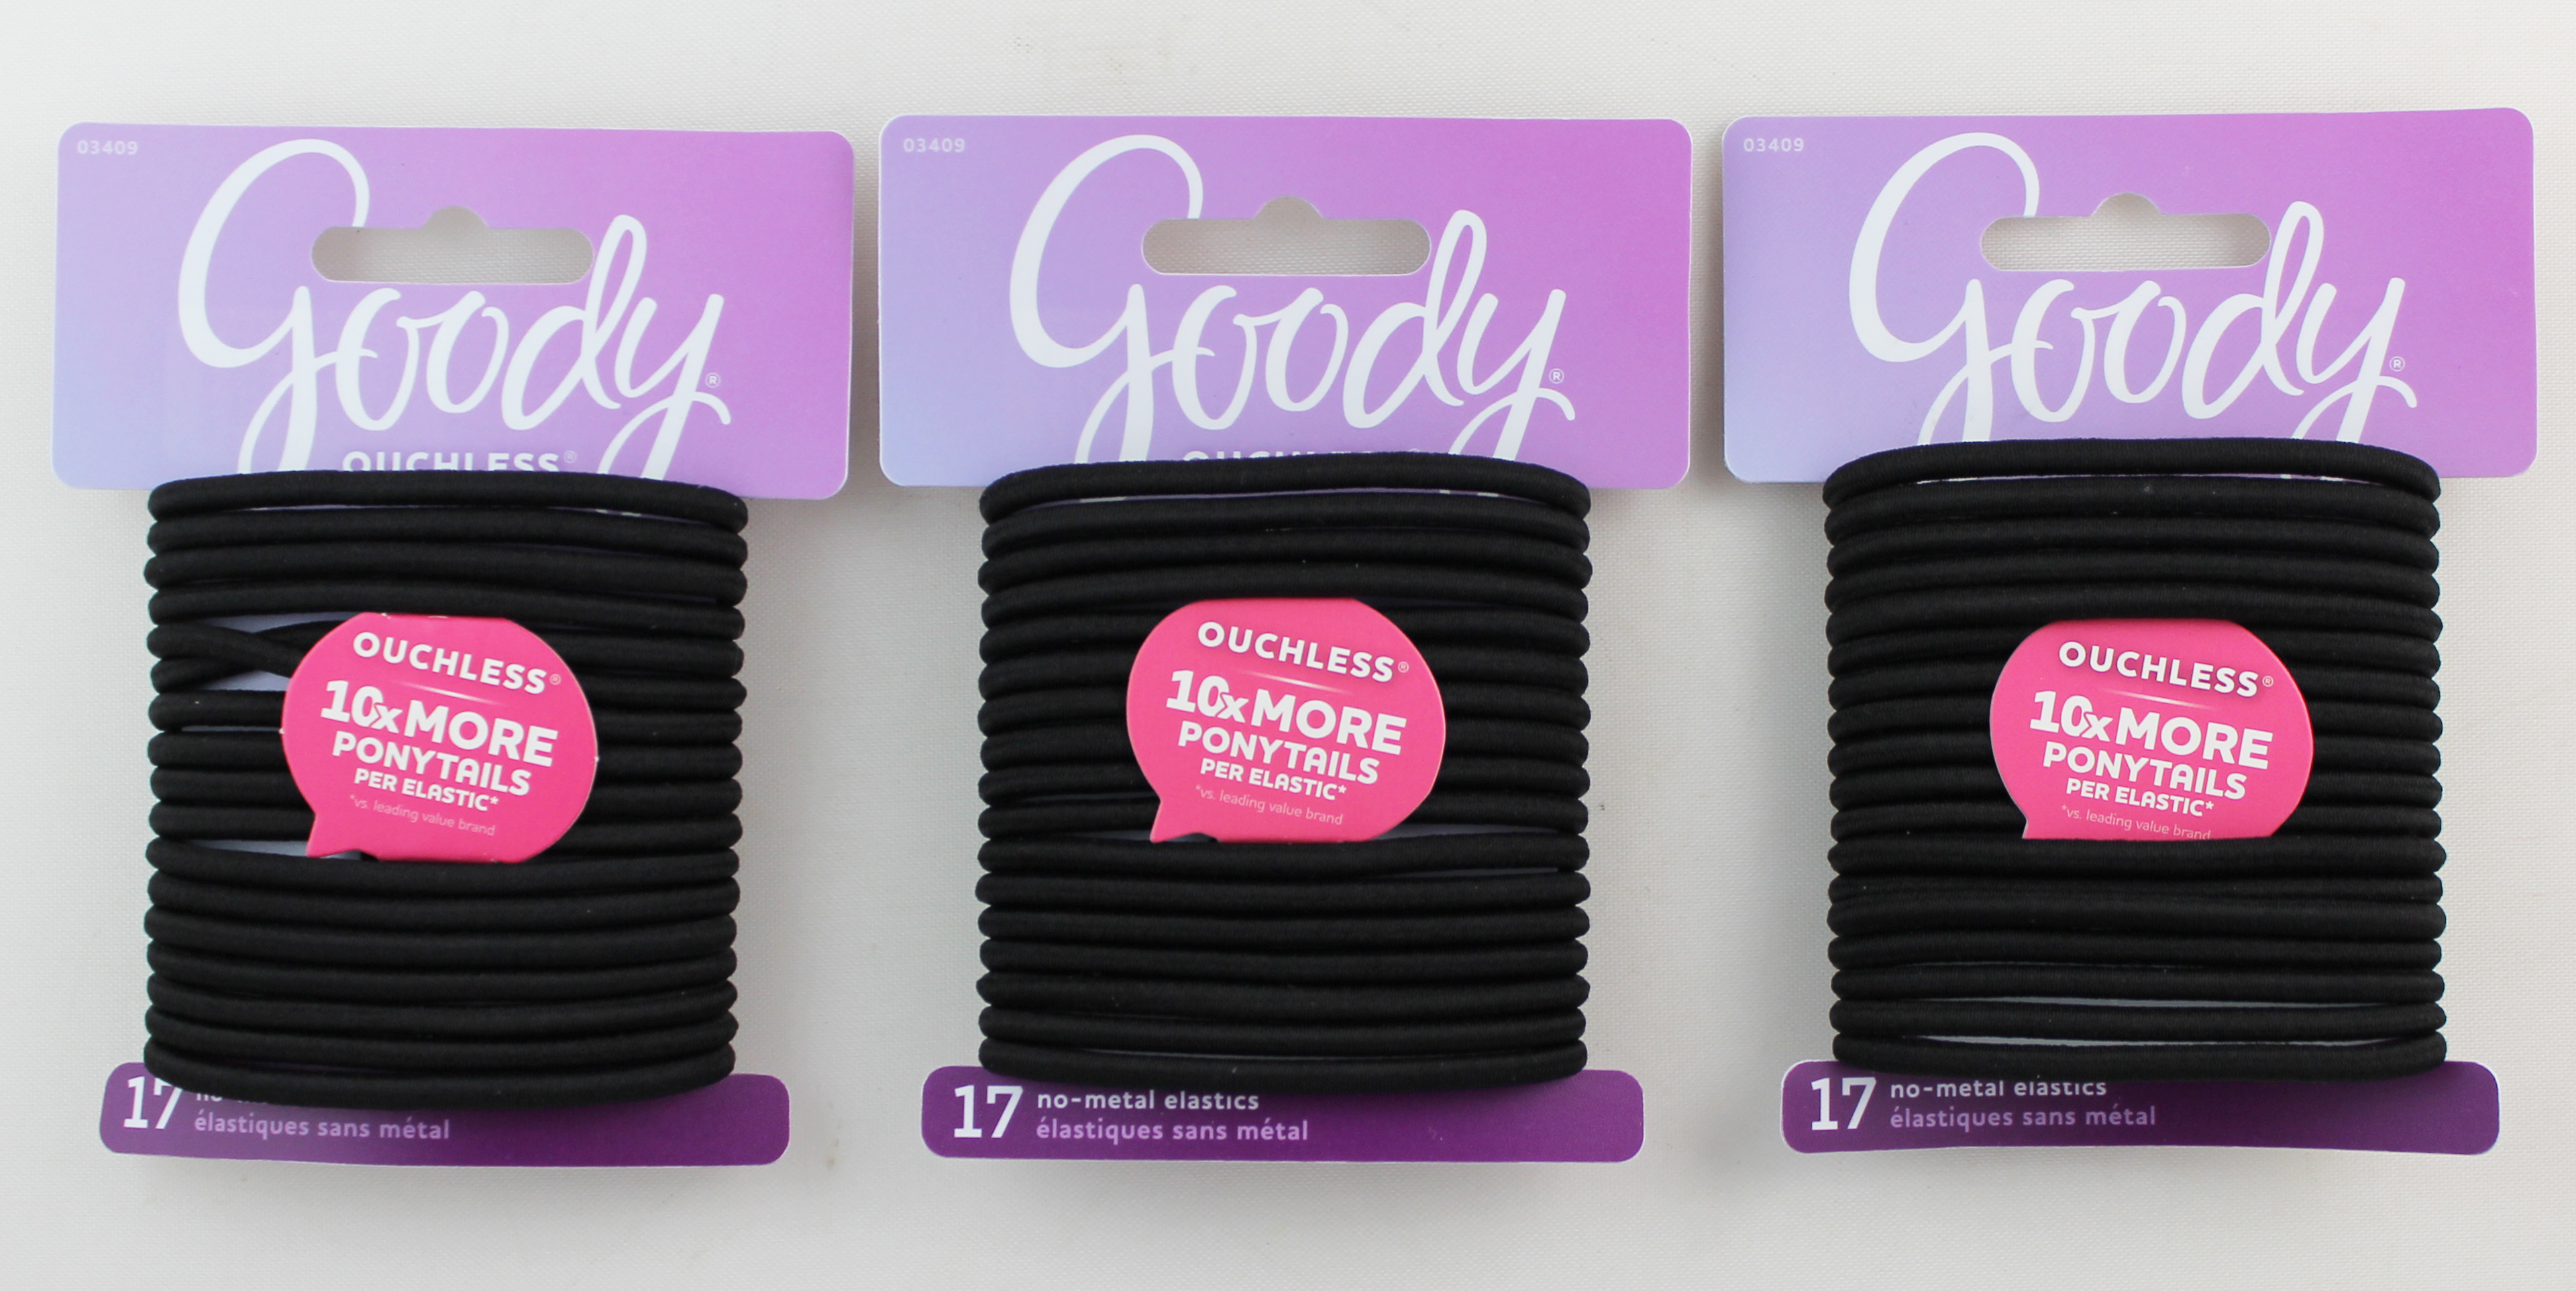 Gooody 4MM Ouchless Black Elastics 17 Count